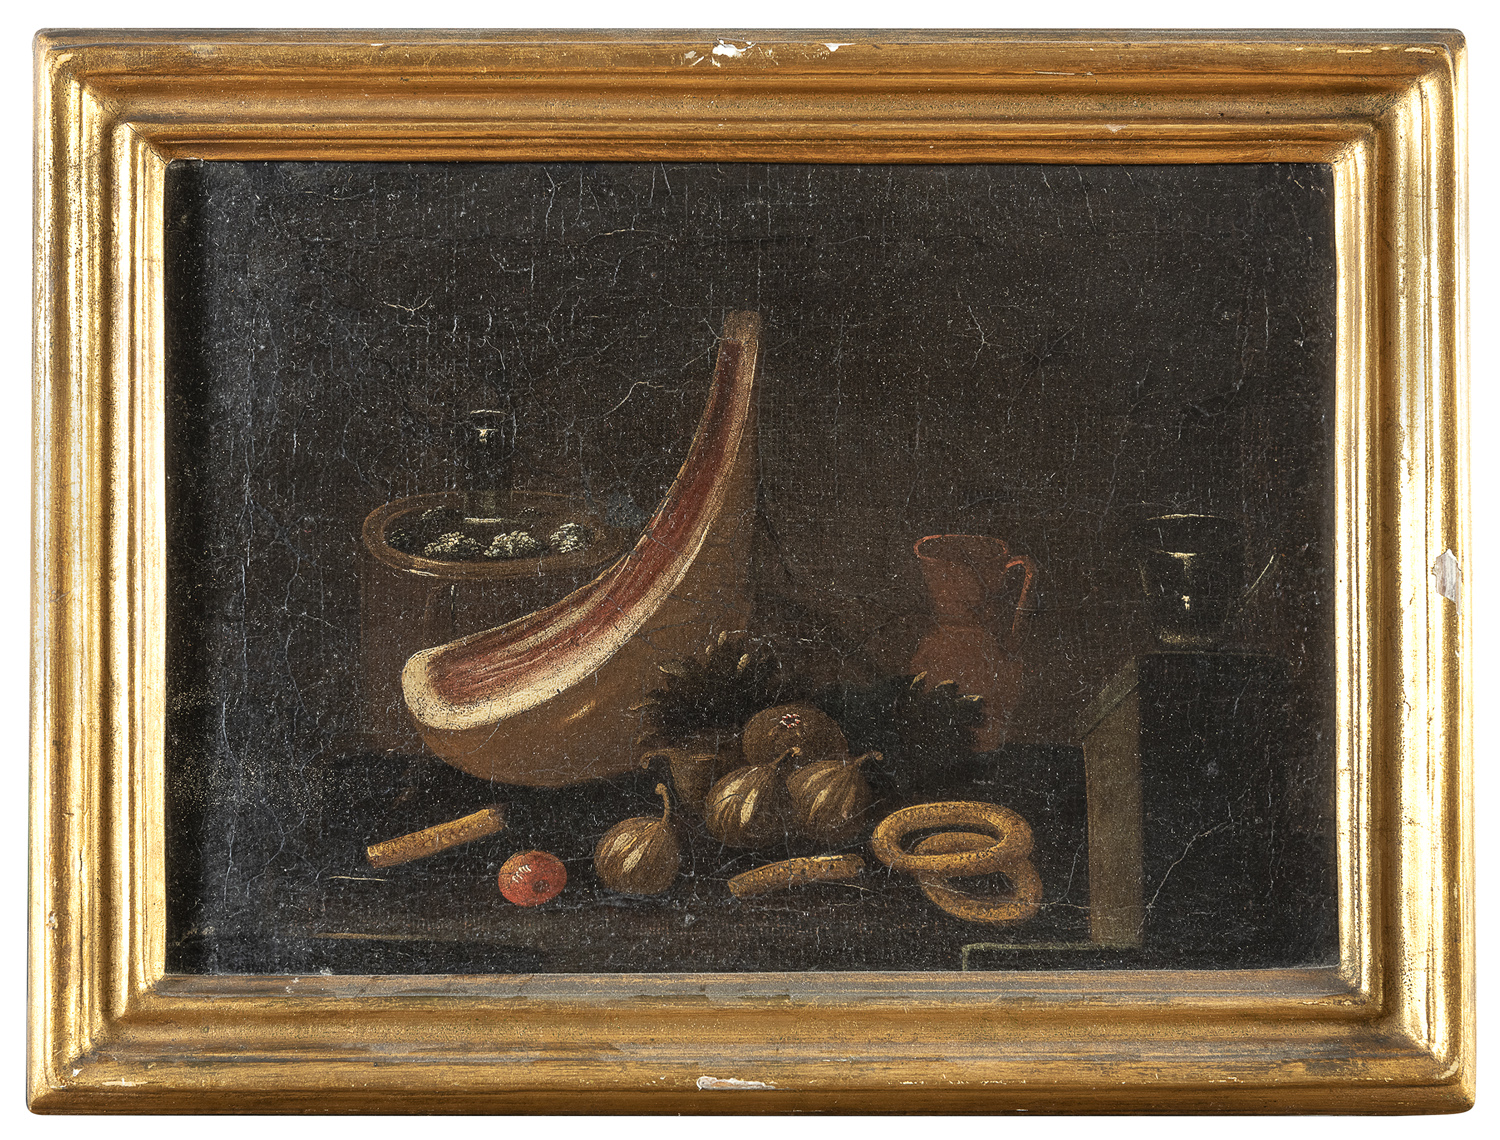 DUTCH OIL PAINTING 17th CENTURY - Image 2 of 2